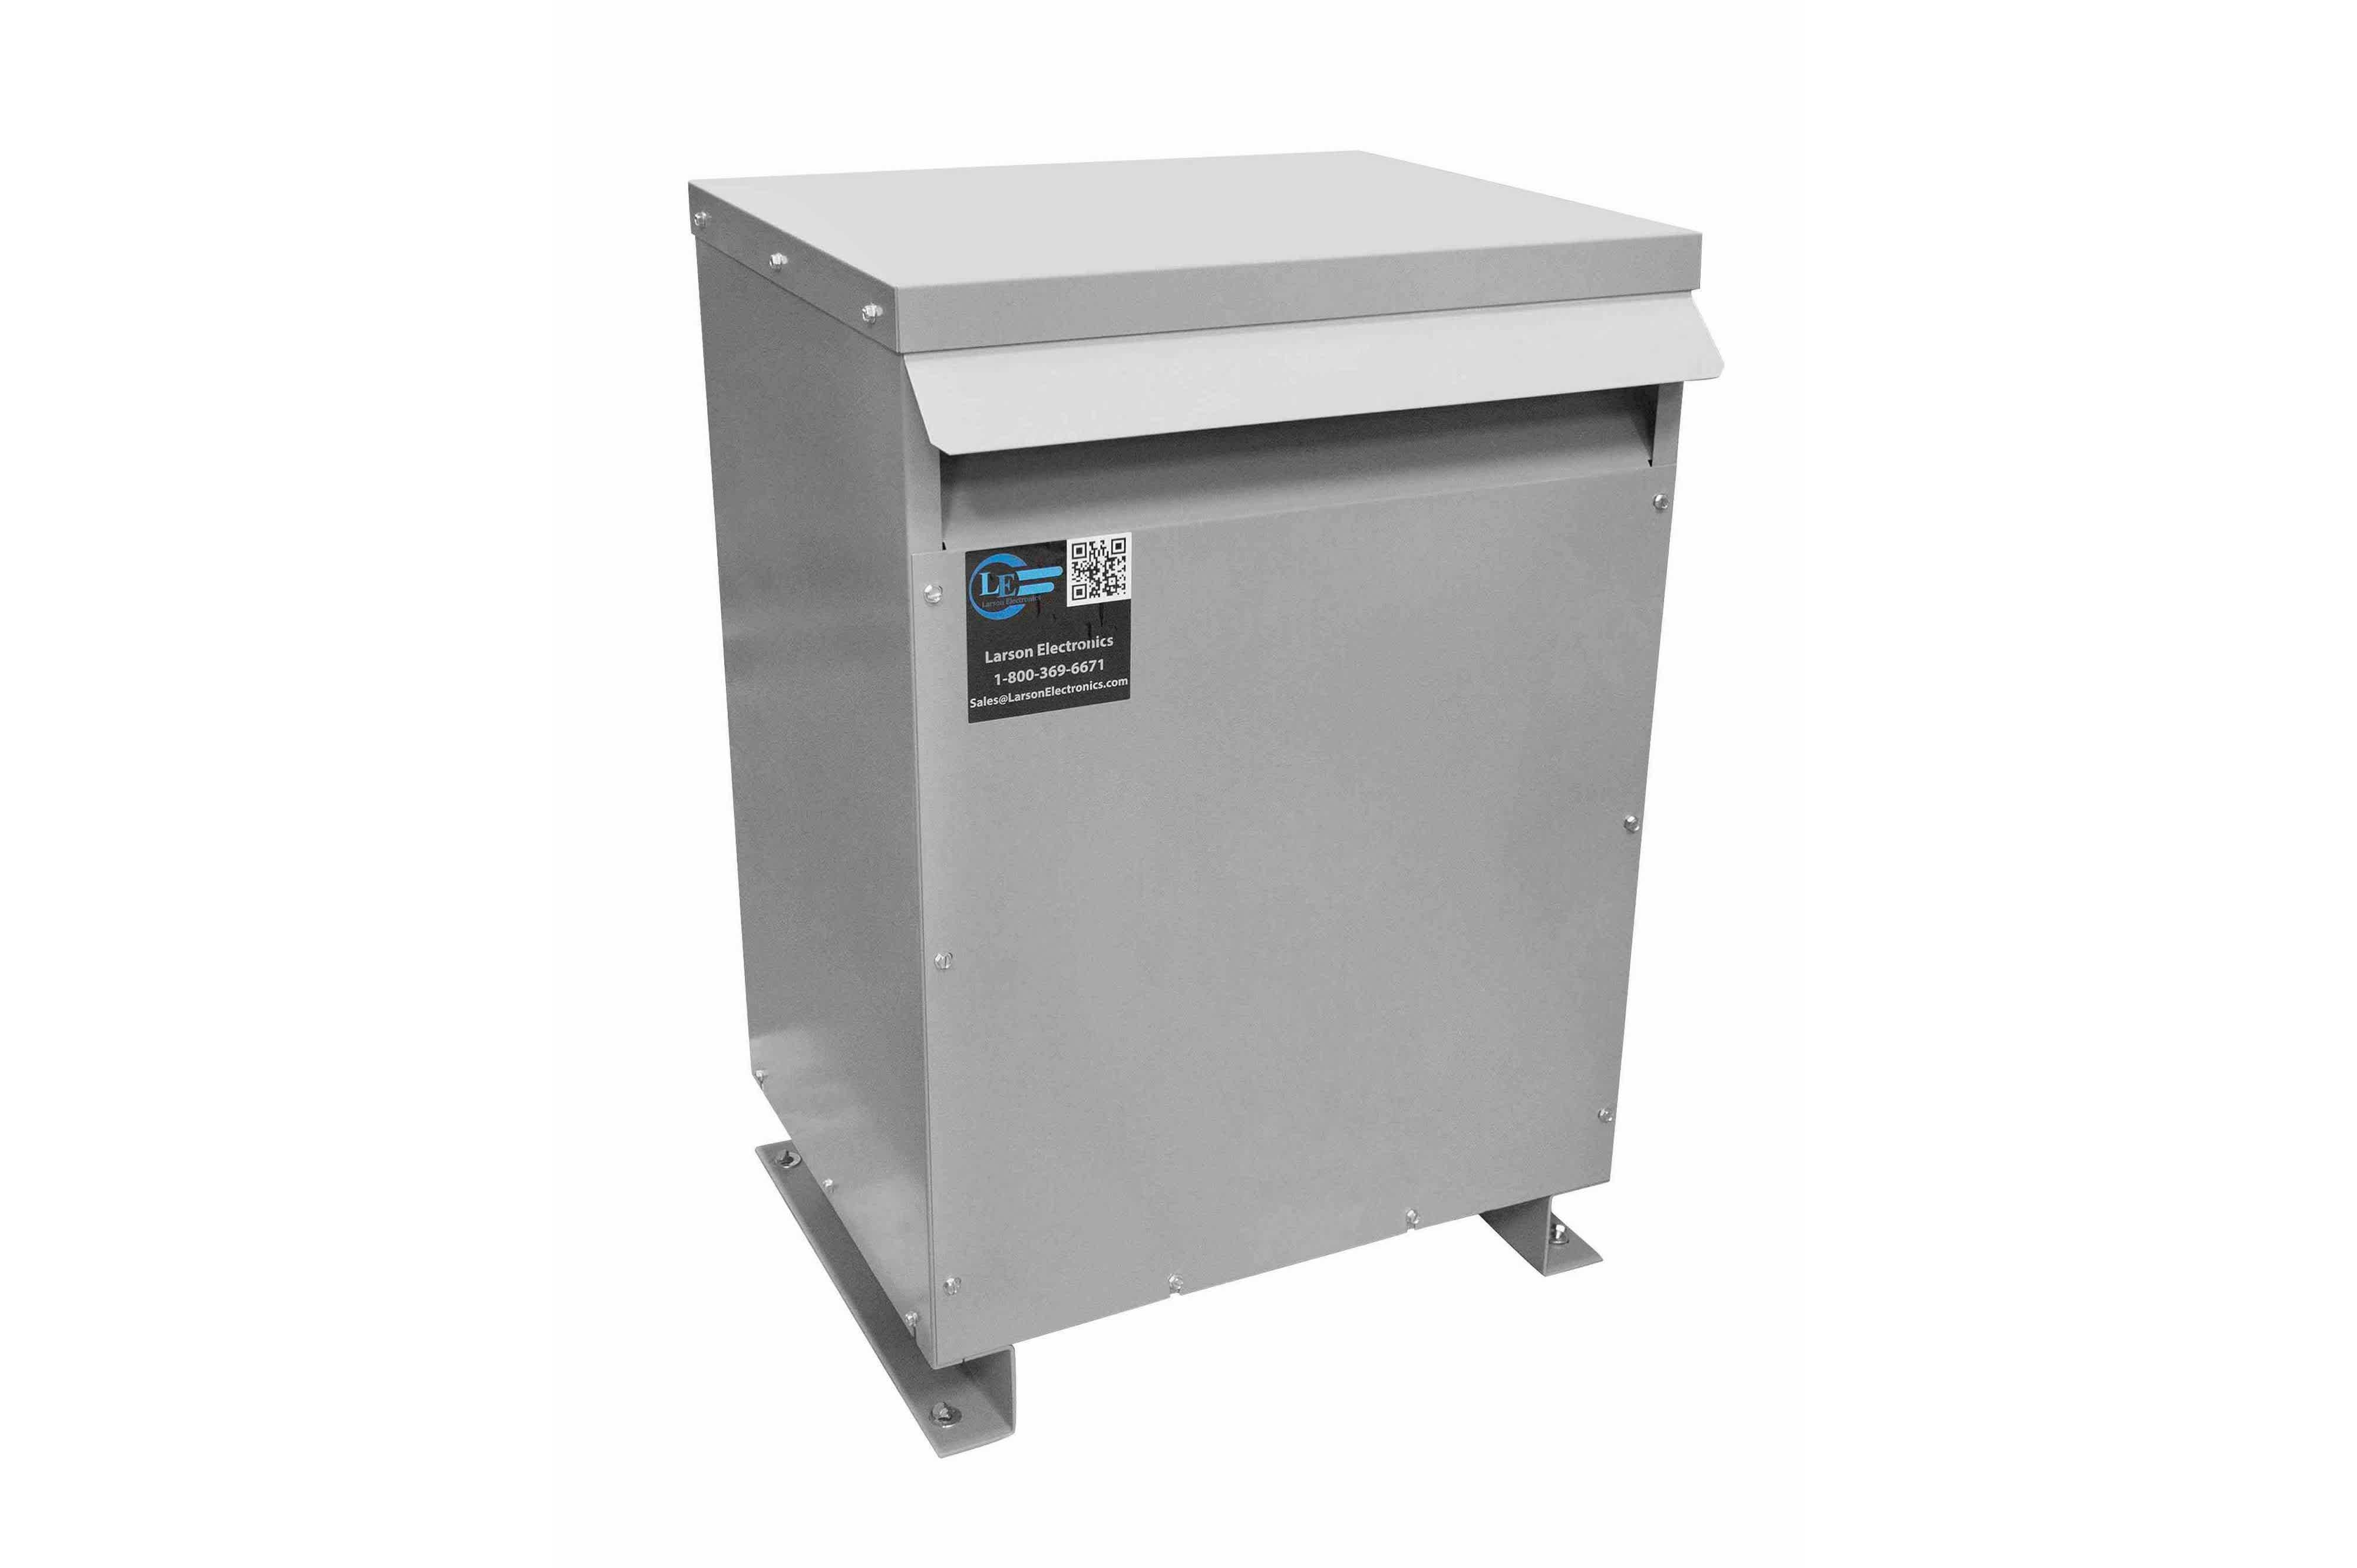 29 kVA 3PH Isolation Transformer, 600V Wye Primary, 480Y/277 Wye-N Secondary, N3R, Ventilated, 60 Hz